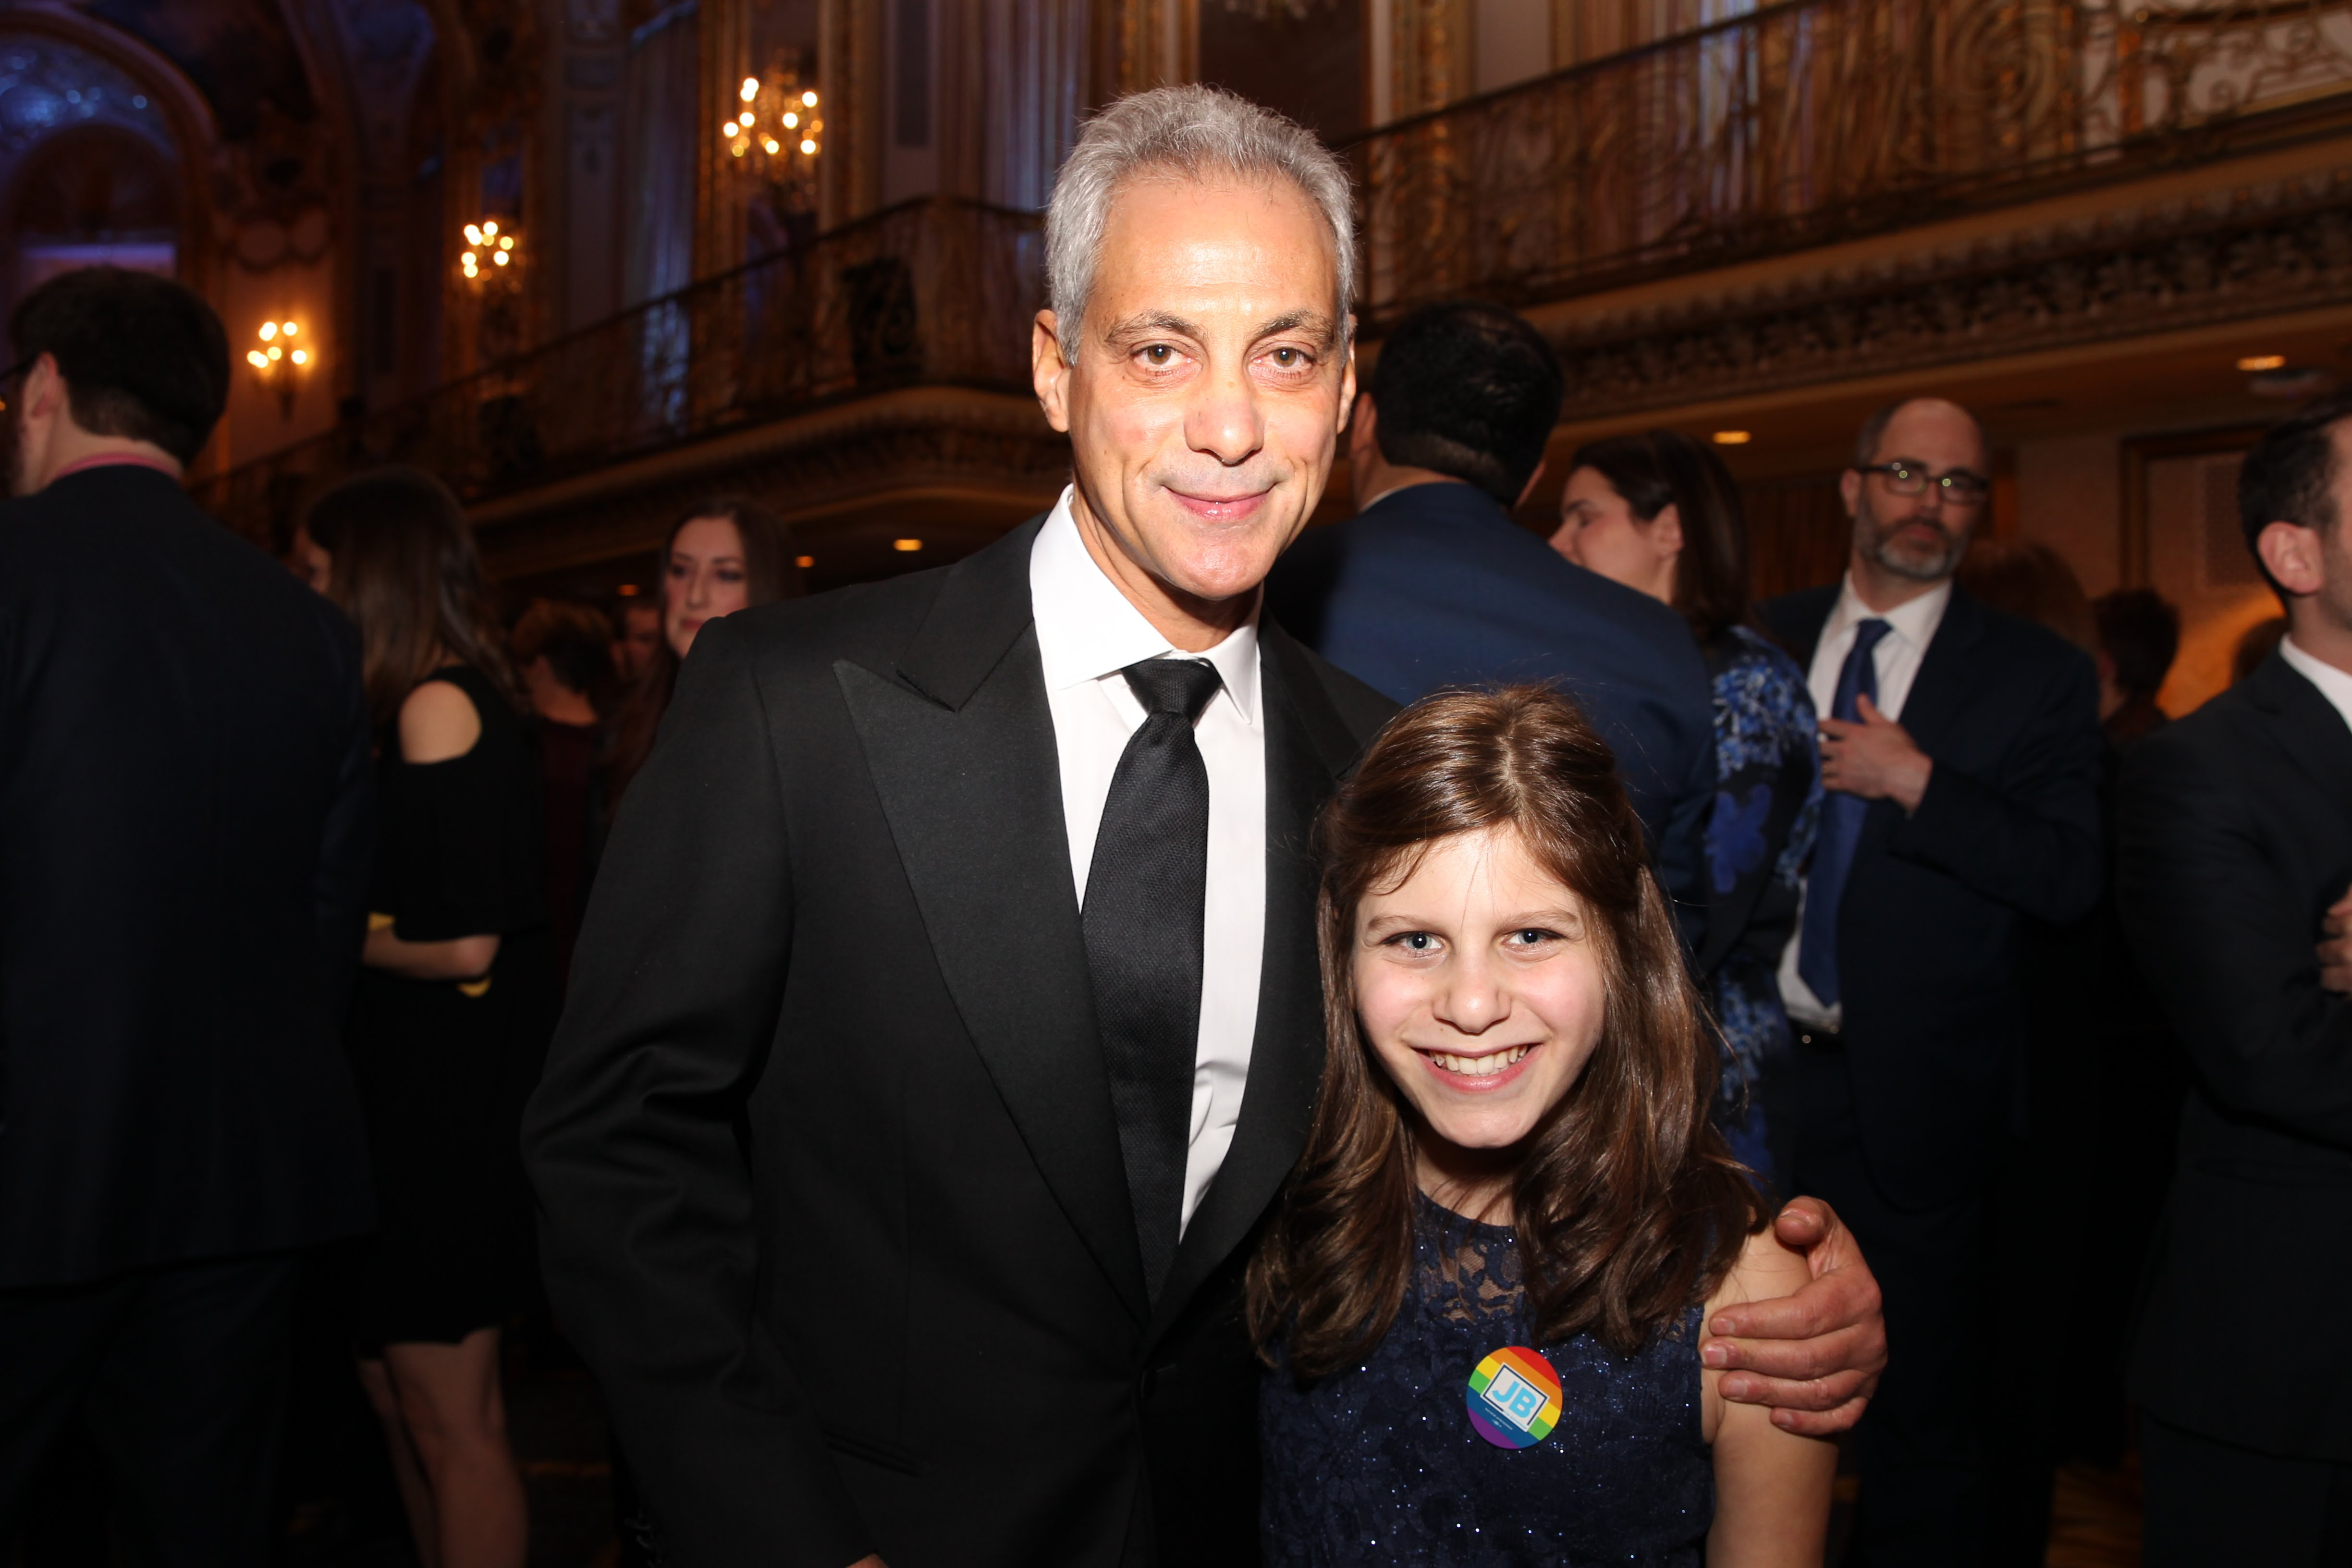 Chazzie meets Chicago Mayor, Rahm Emanuel at the Equality Illinois Gala